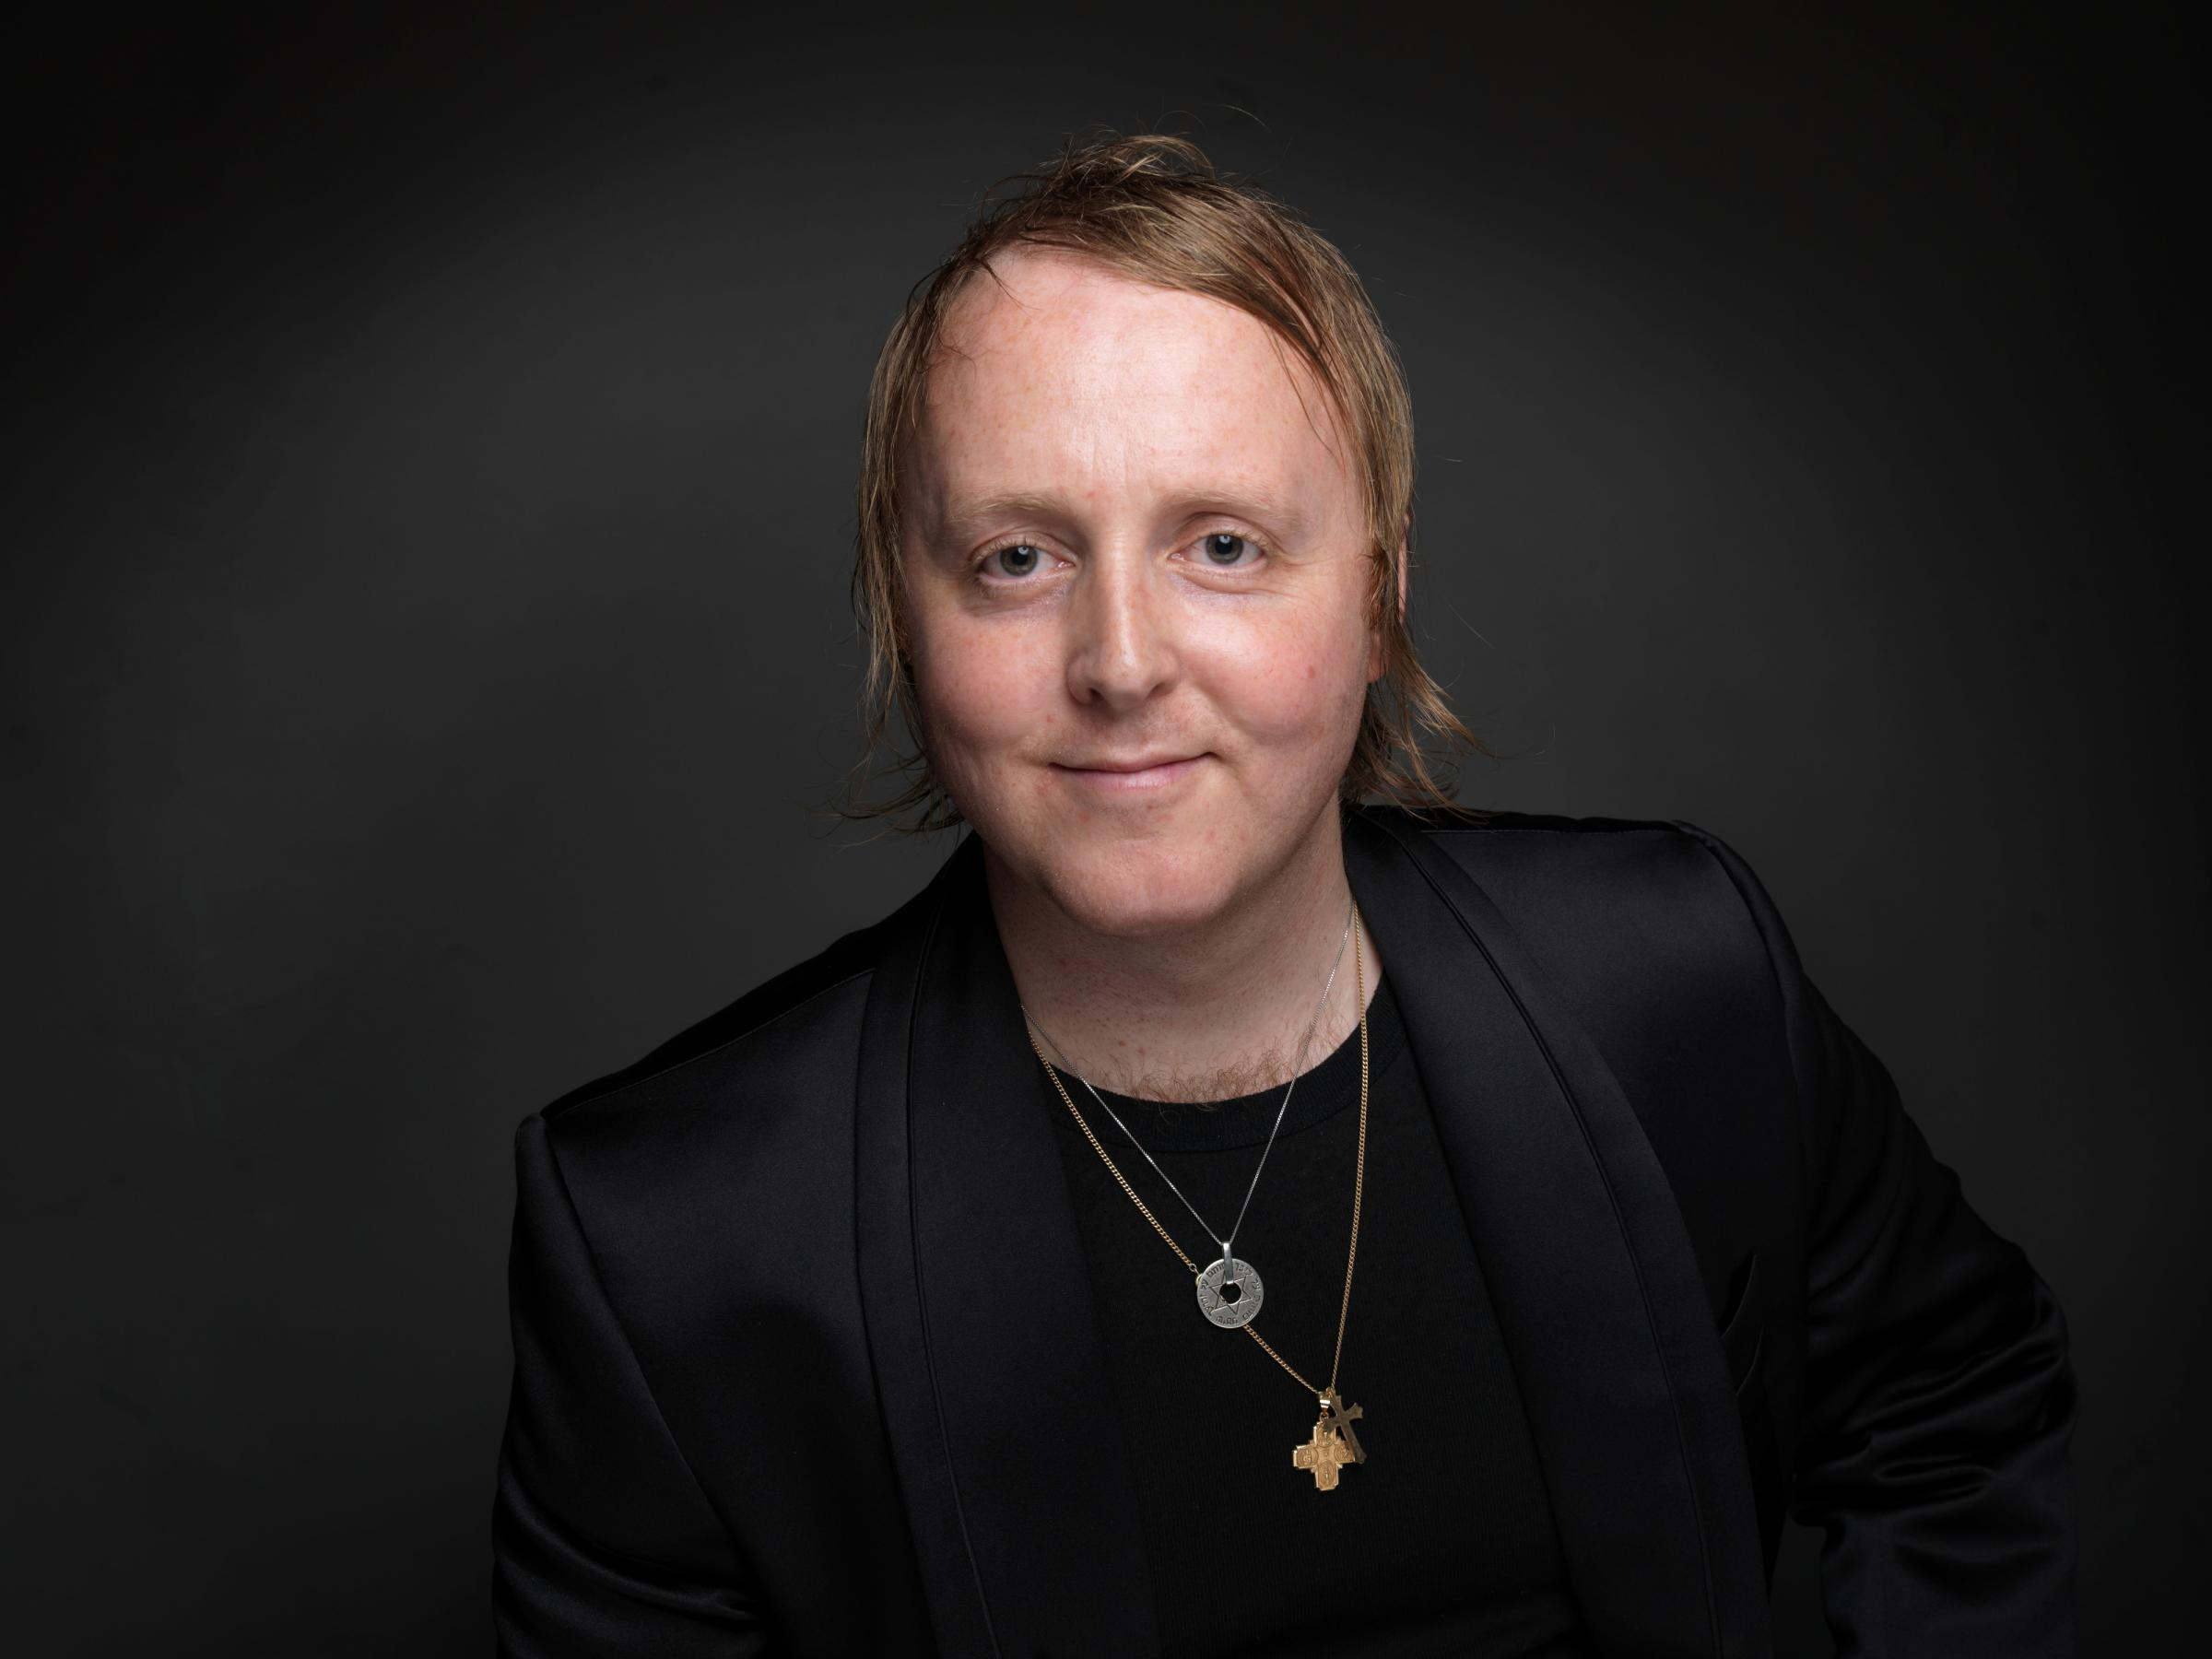 James MccartneyJames Mccartney